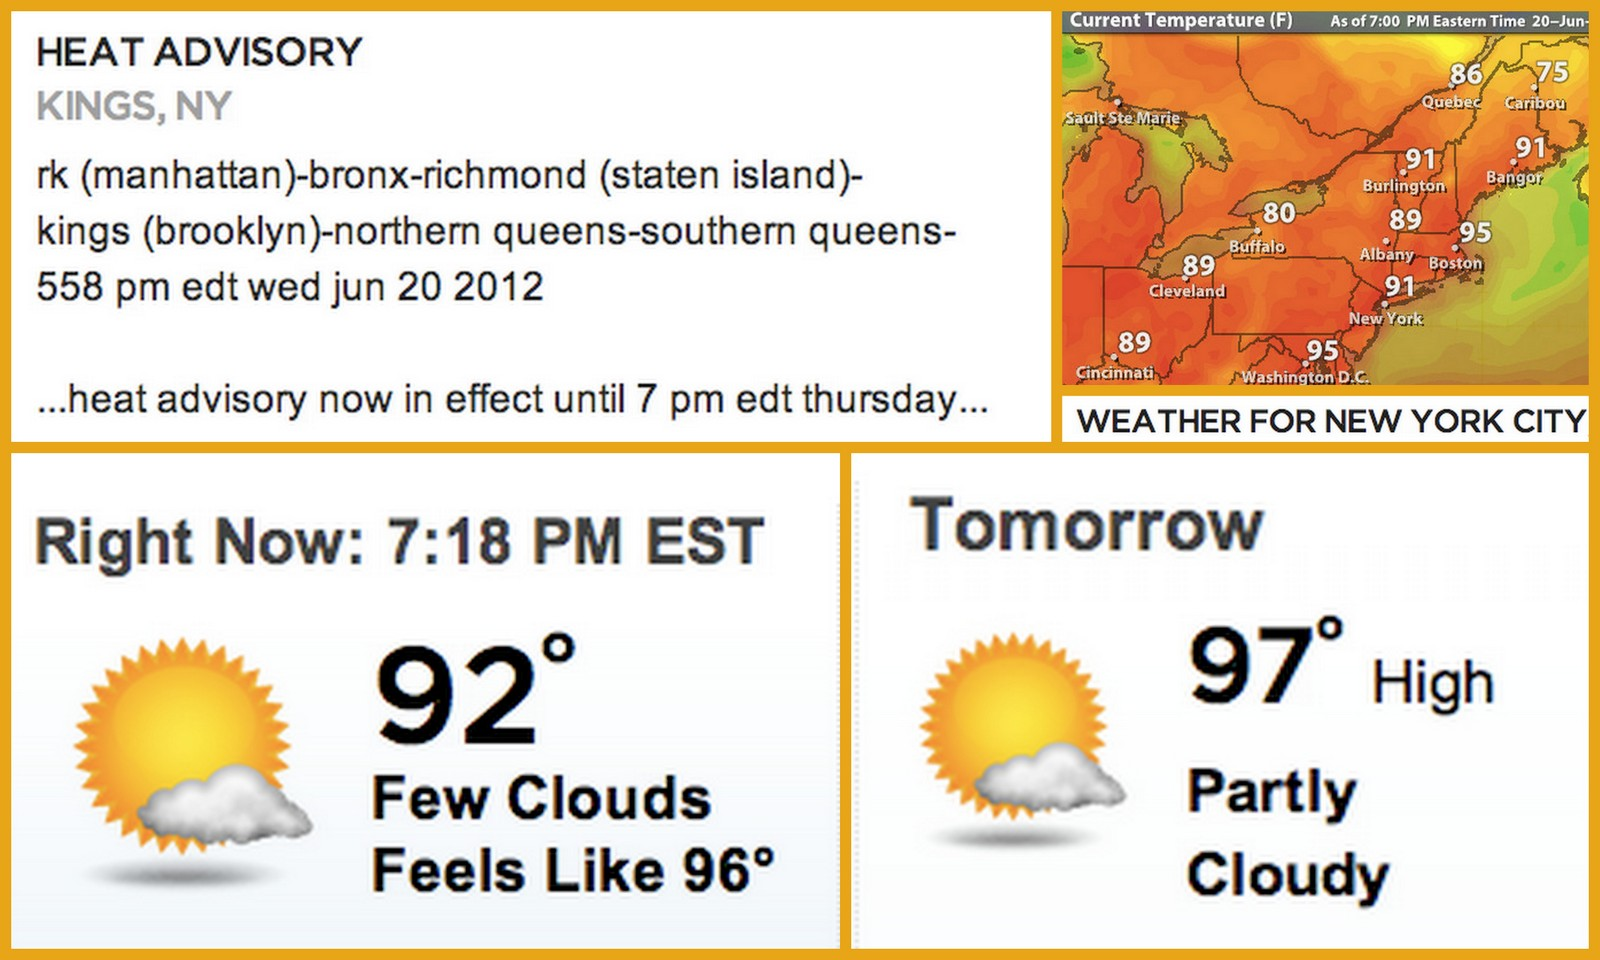 That heatwave that was forecast for New York City appears to have been  #B59316